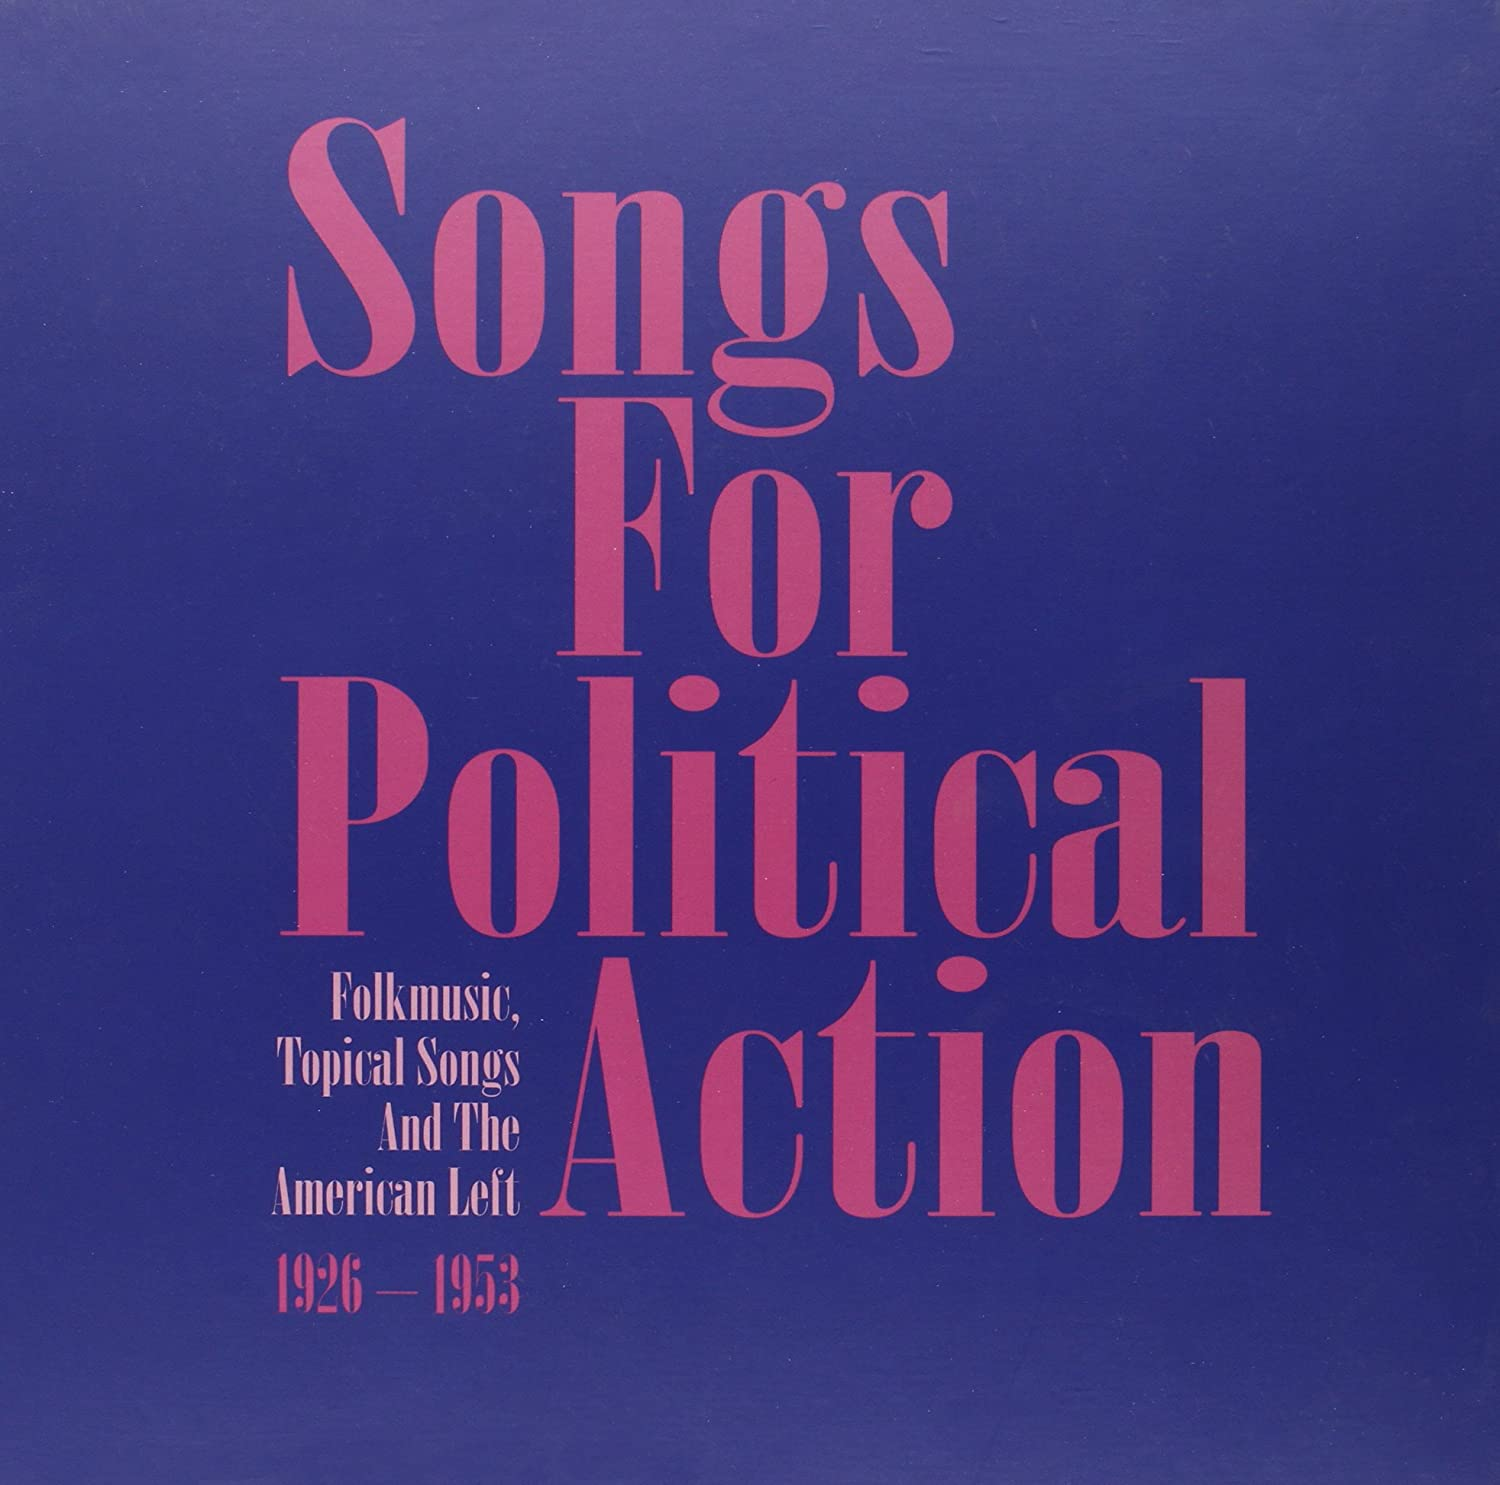 Various Artists - Songs for Political Action: Folk Music, Topical